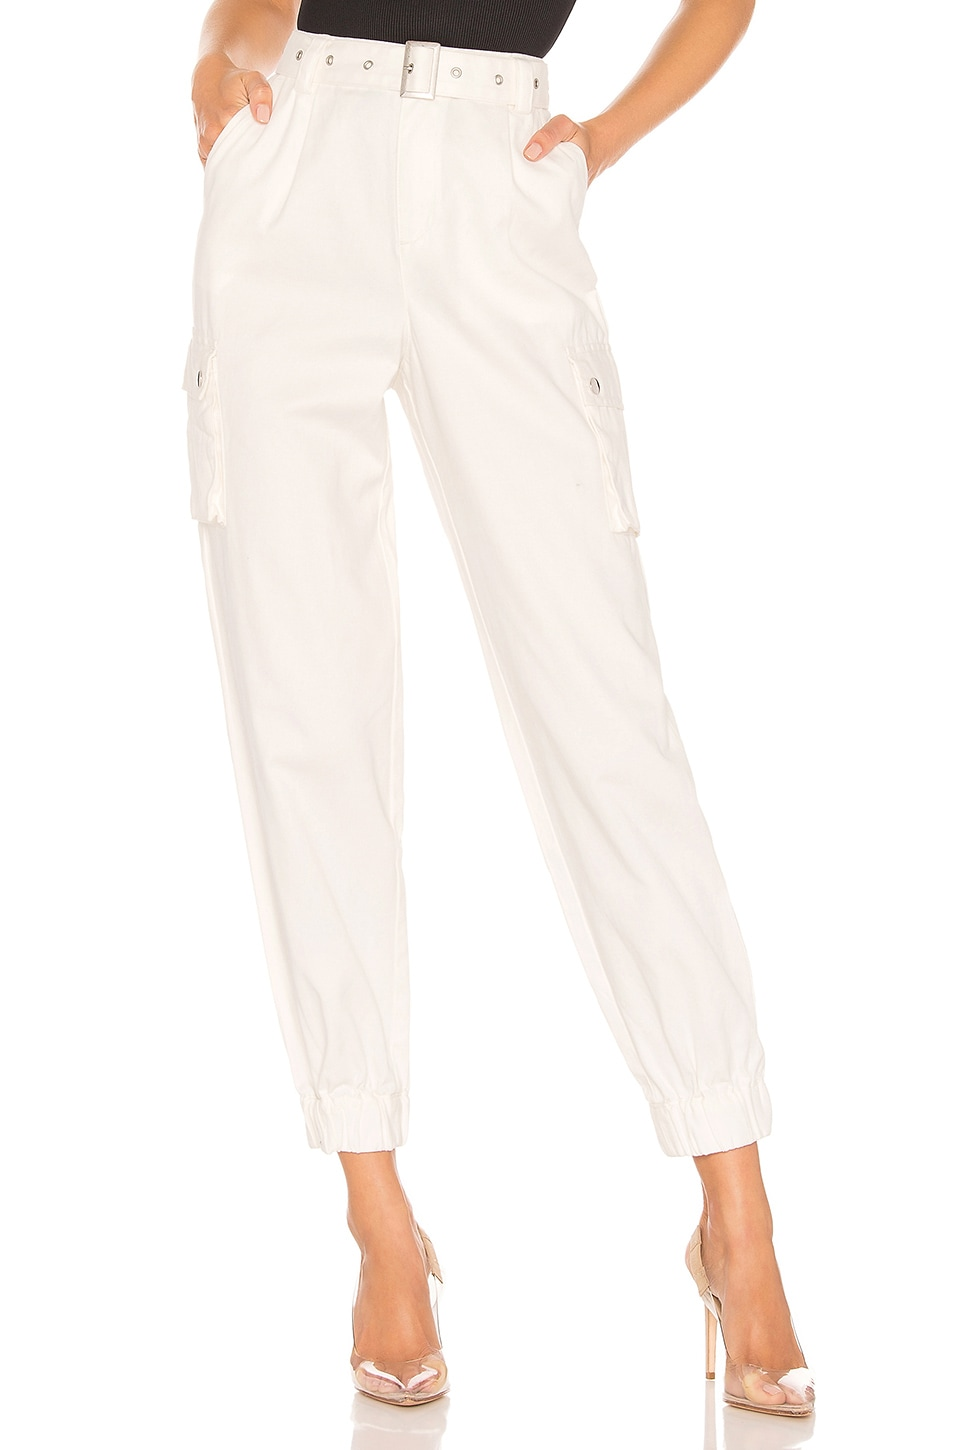 h:ours Rian Pants in White